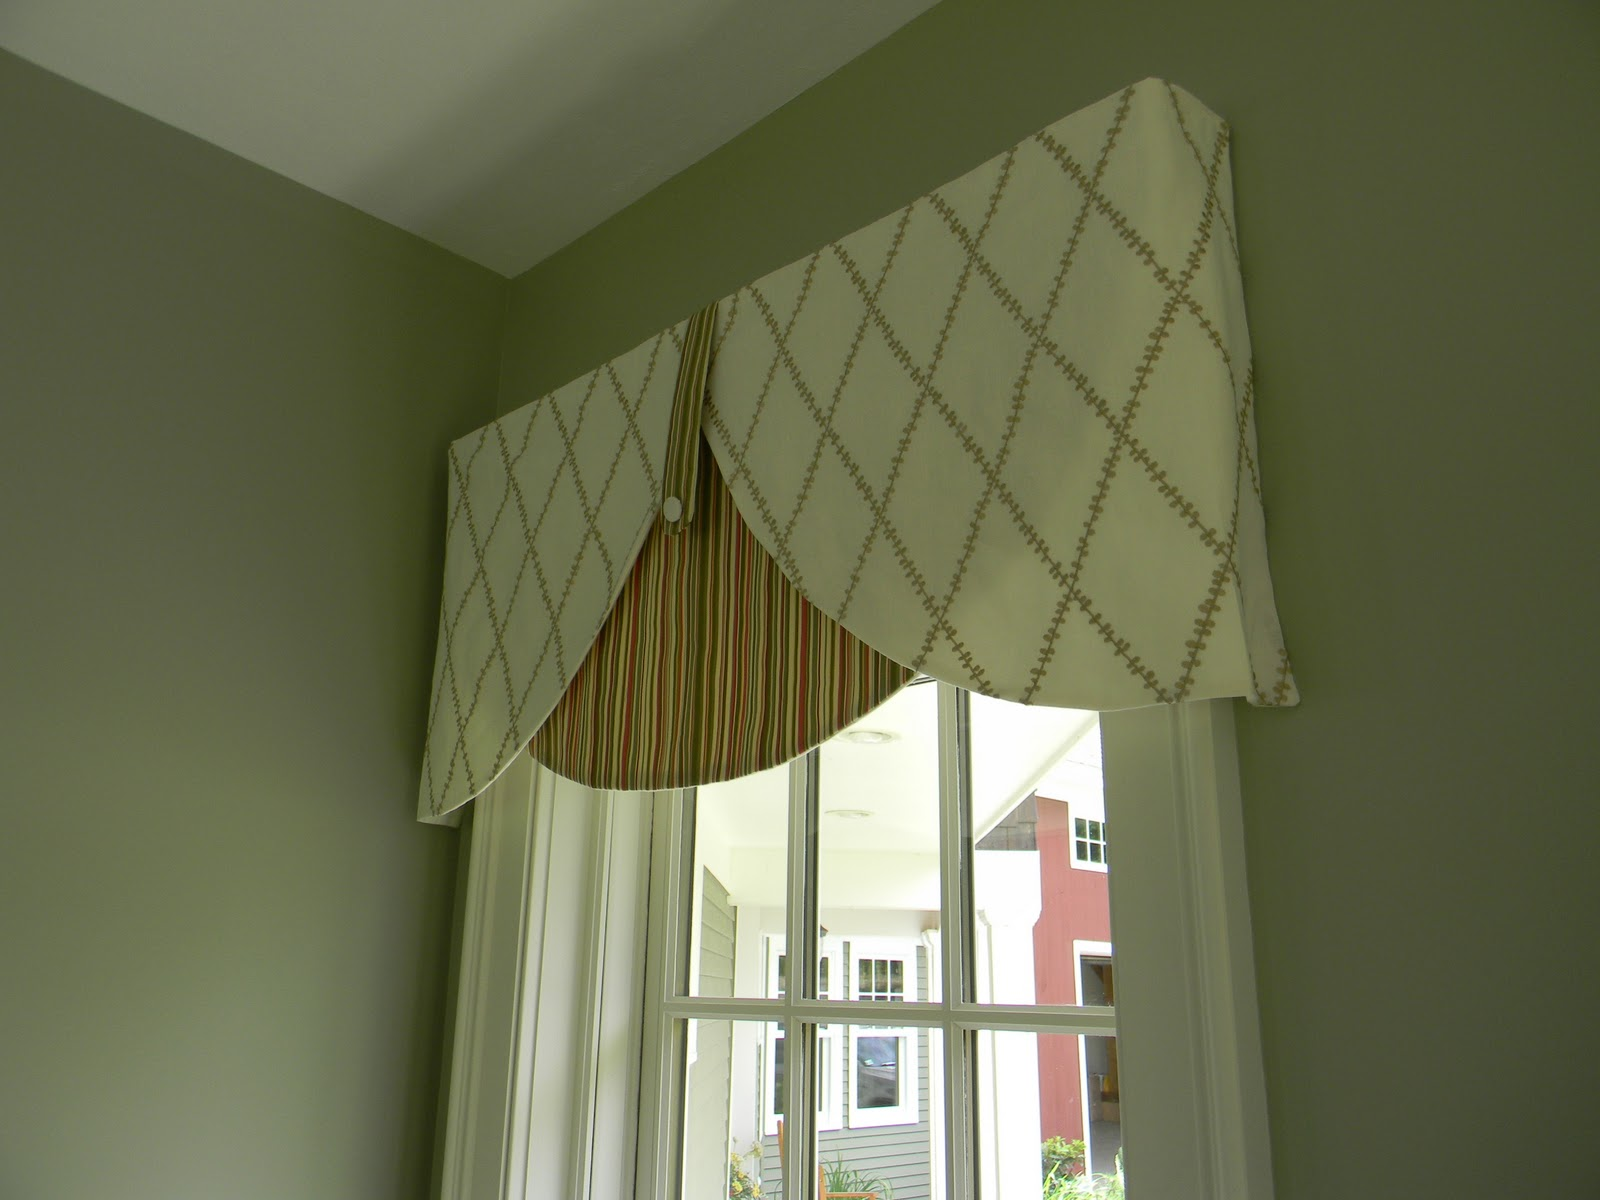 two fabrics contrasting patterns and shapes enhance details of the room - Valance Design Ideas